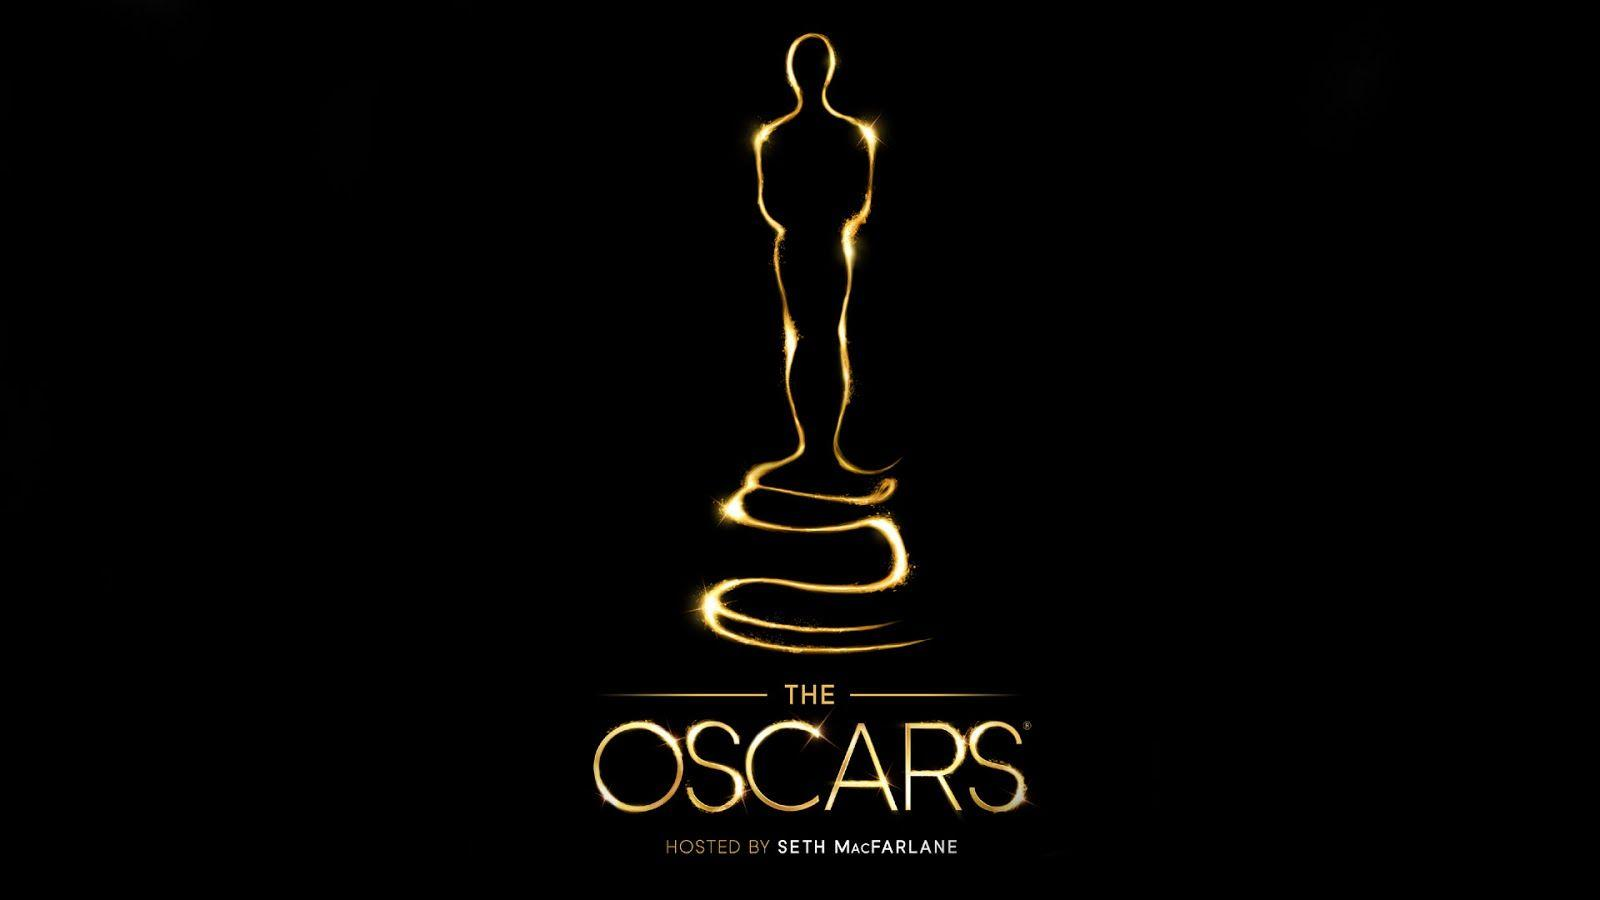 31 Fantastic Oscar Award Hd Wallpapers